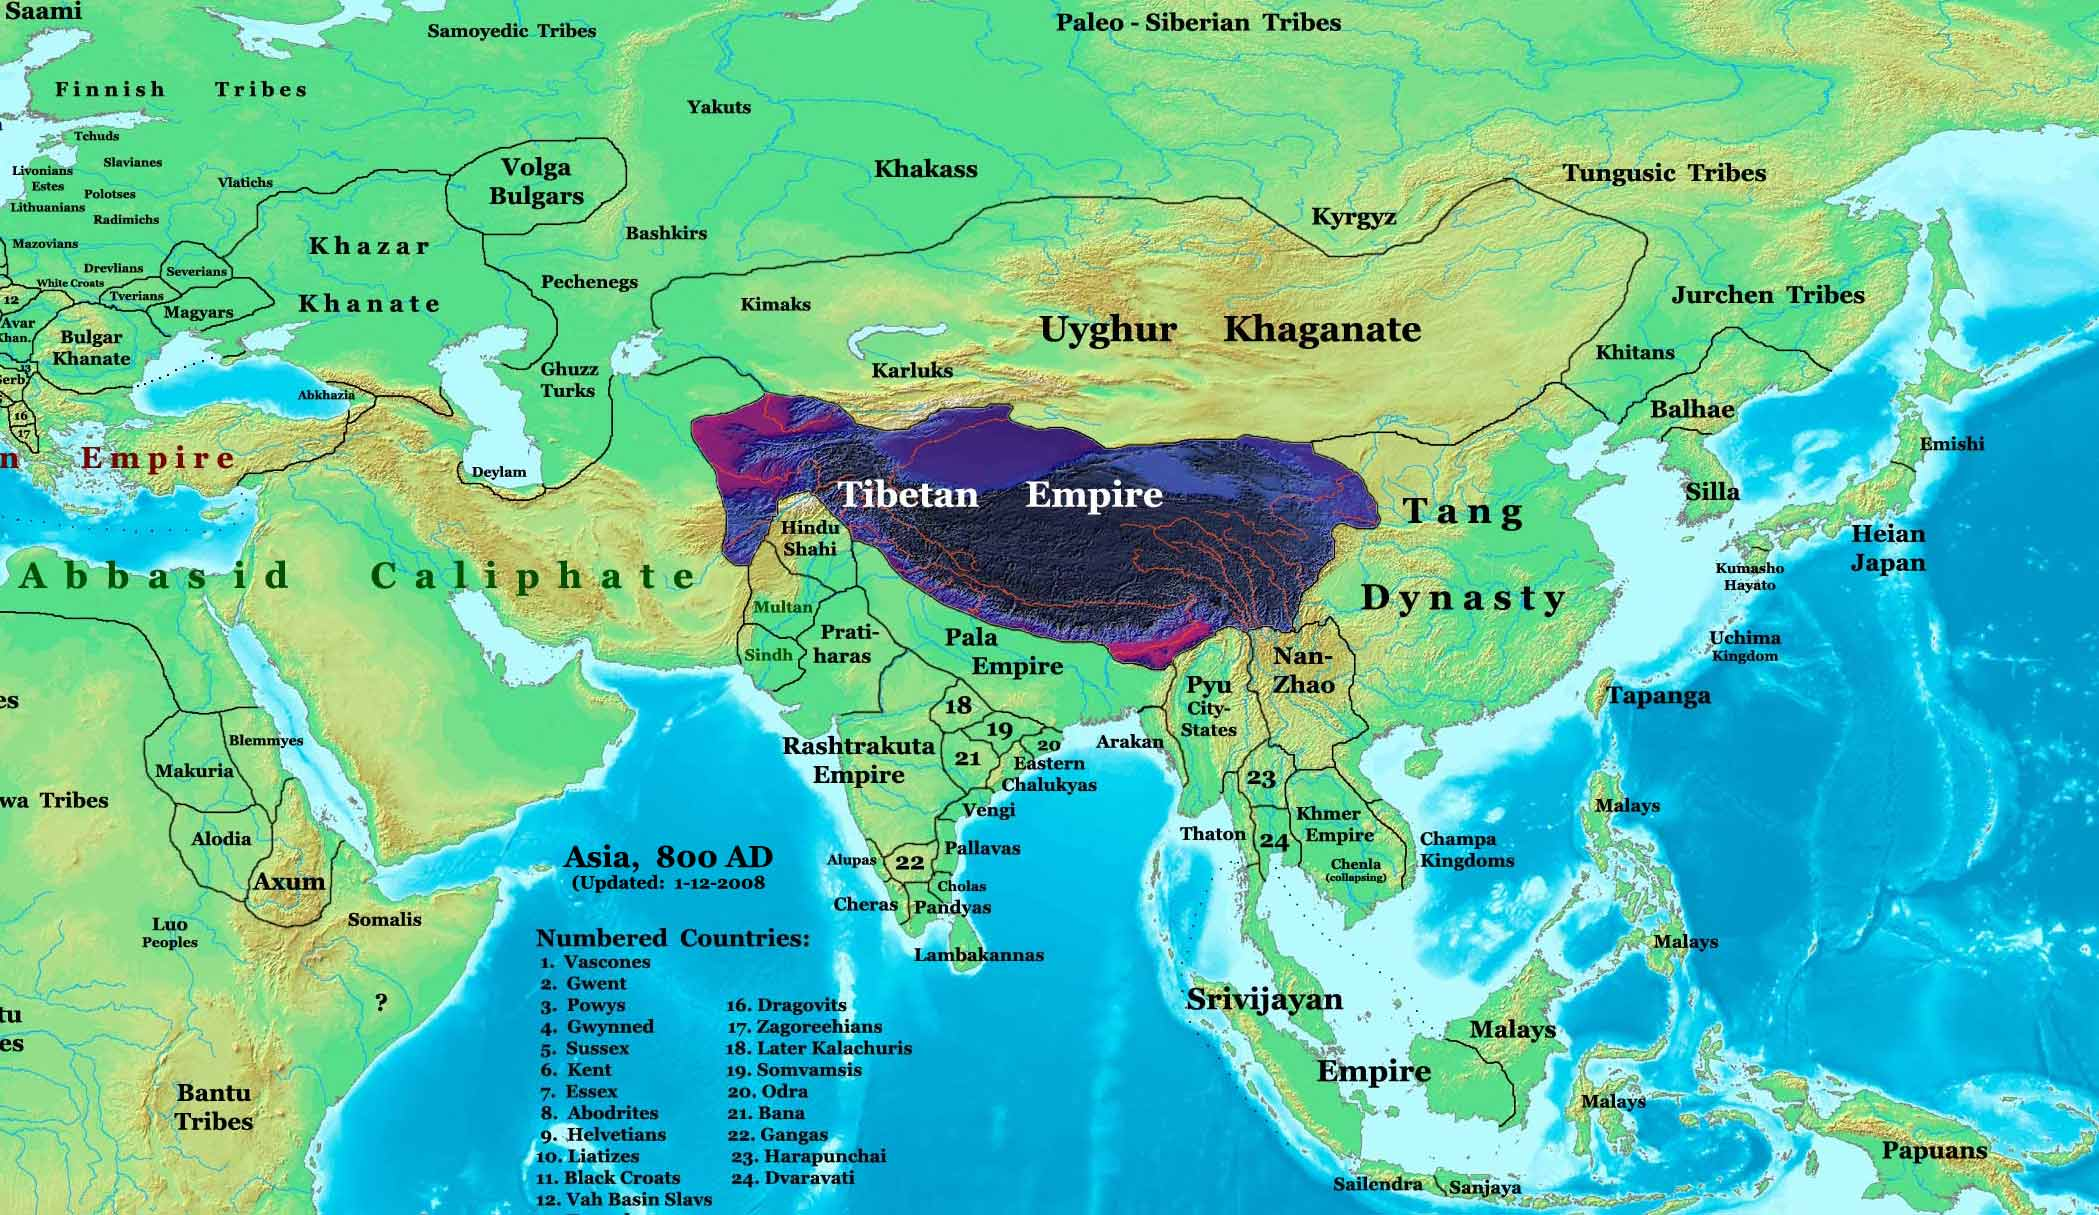 Map Of Asia 800 Ad.World History Maps By Thomas Lessman